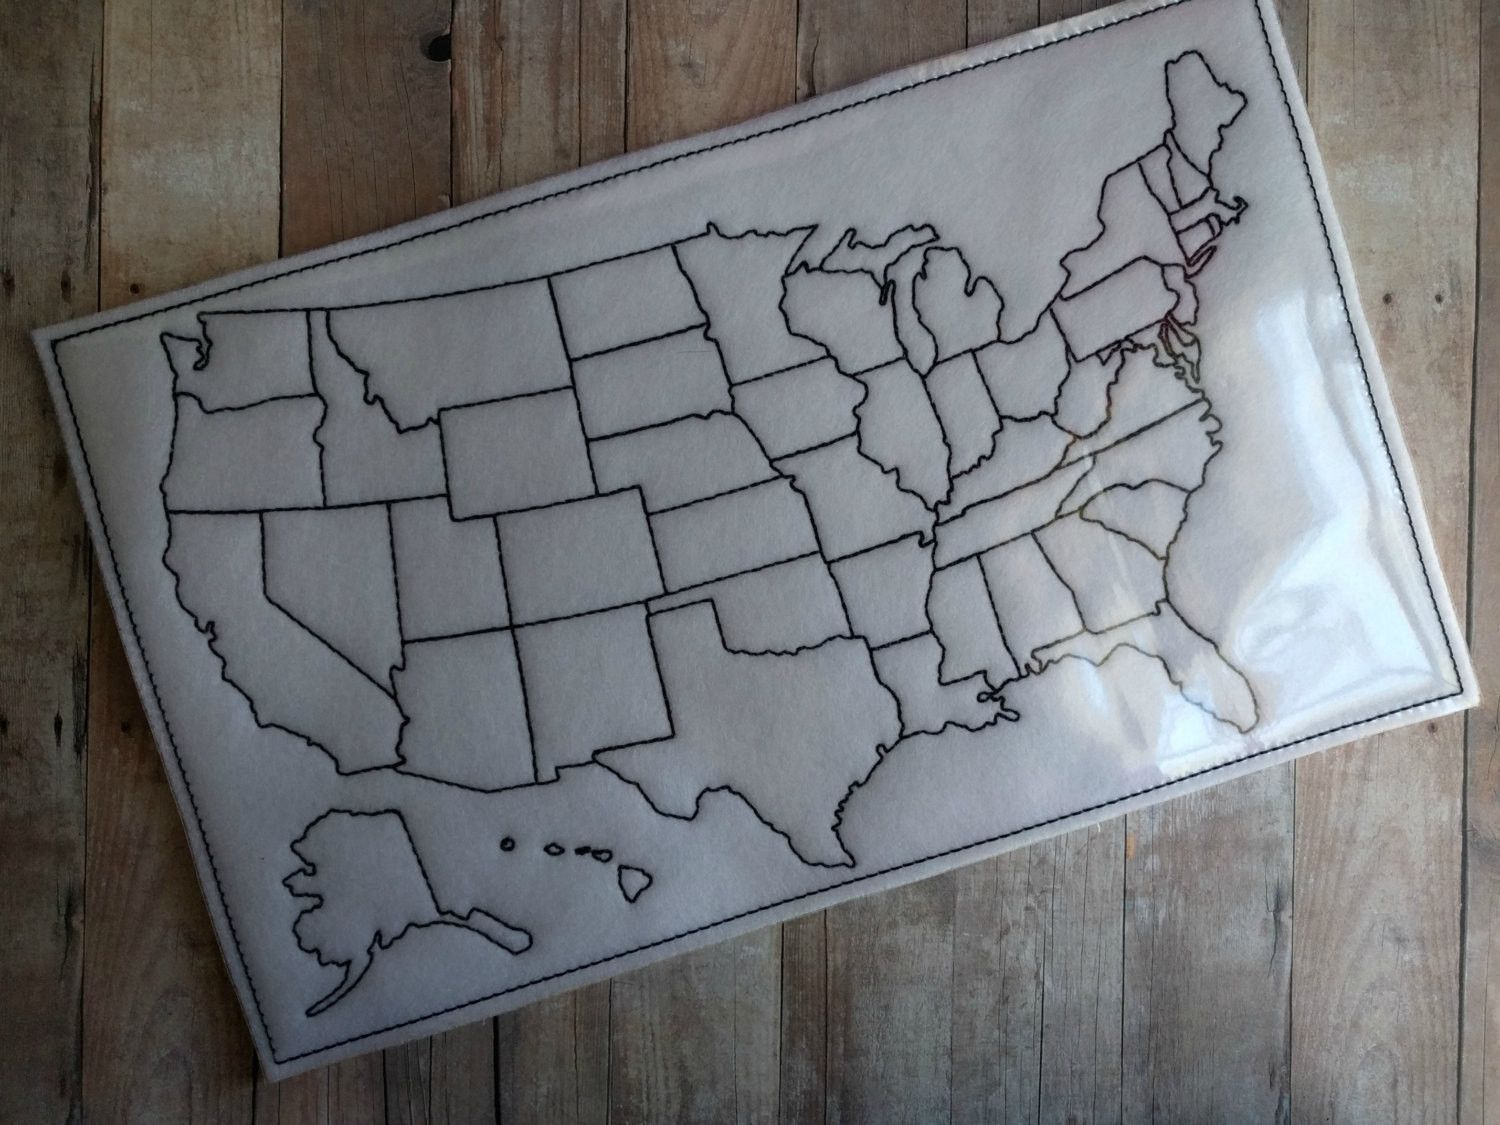 USA Map Dry Erase Board Overlays Vinyls And Acrylics - Us map dry erase